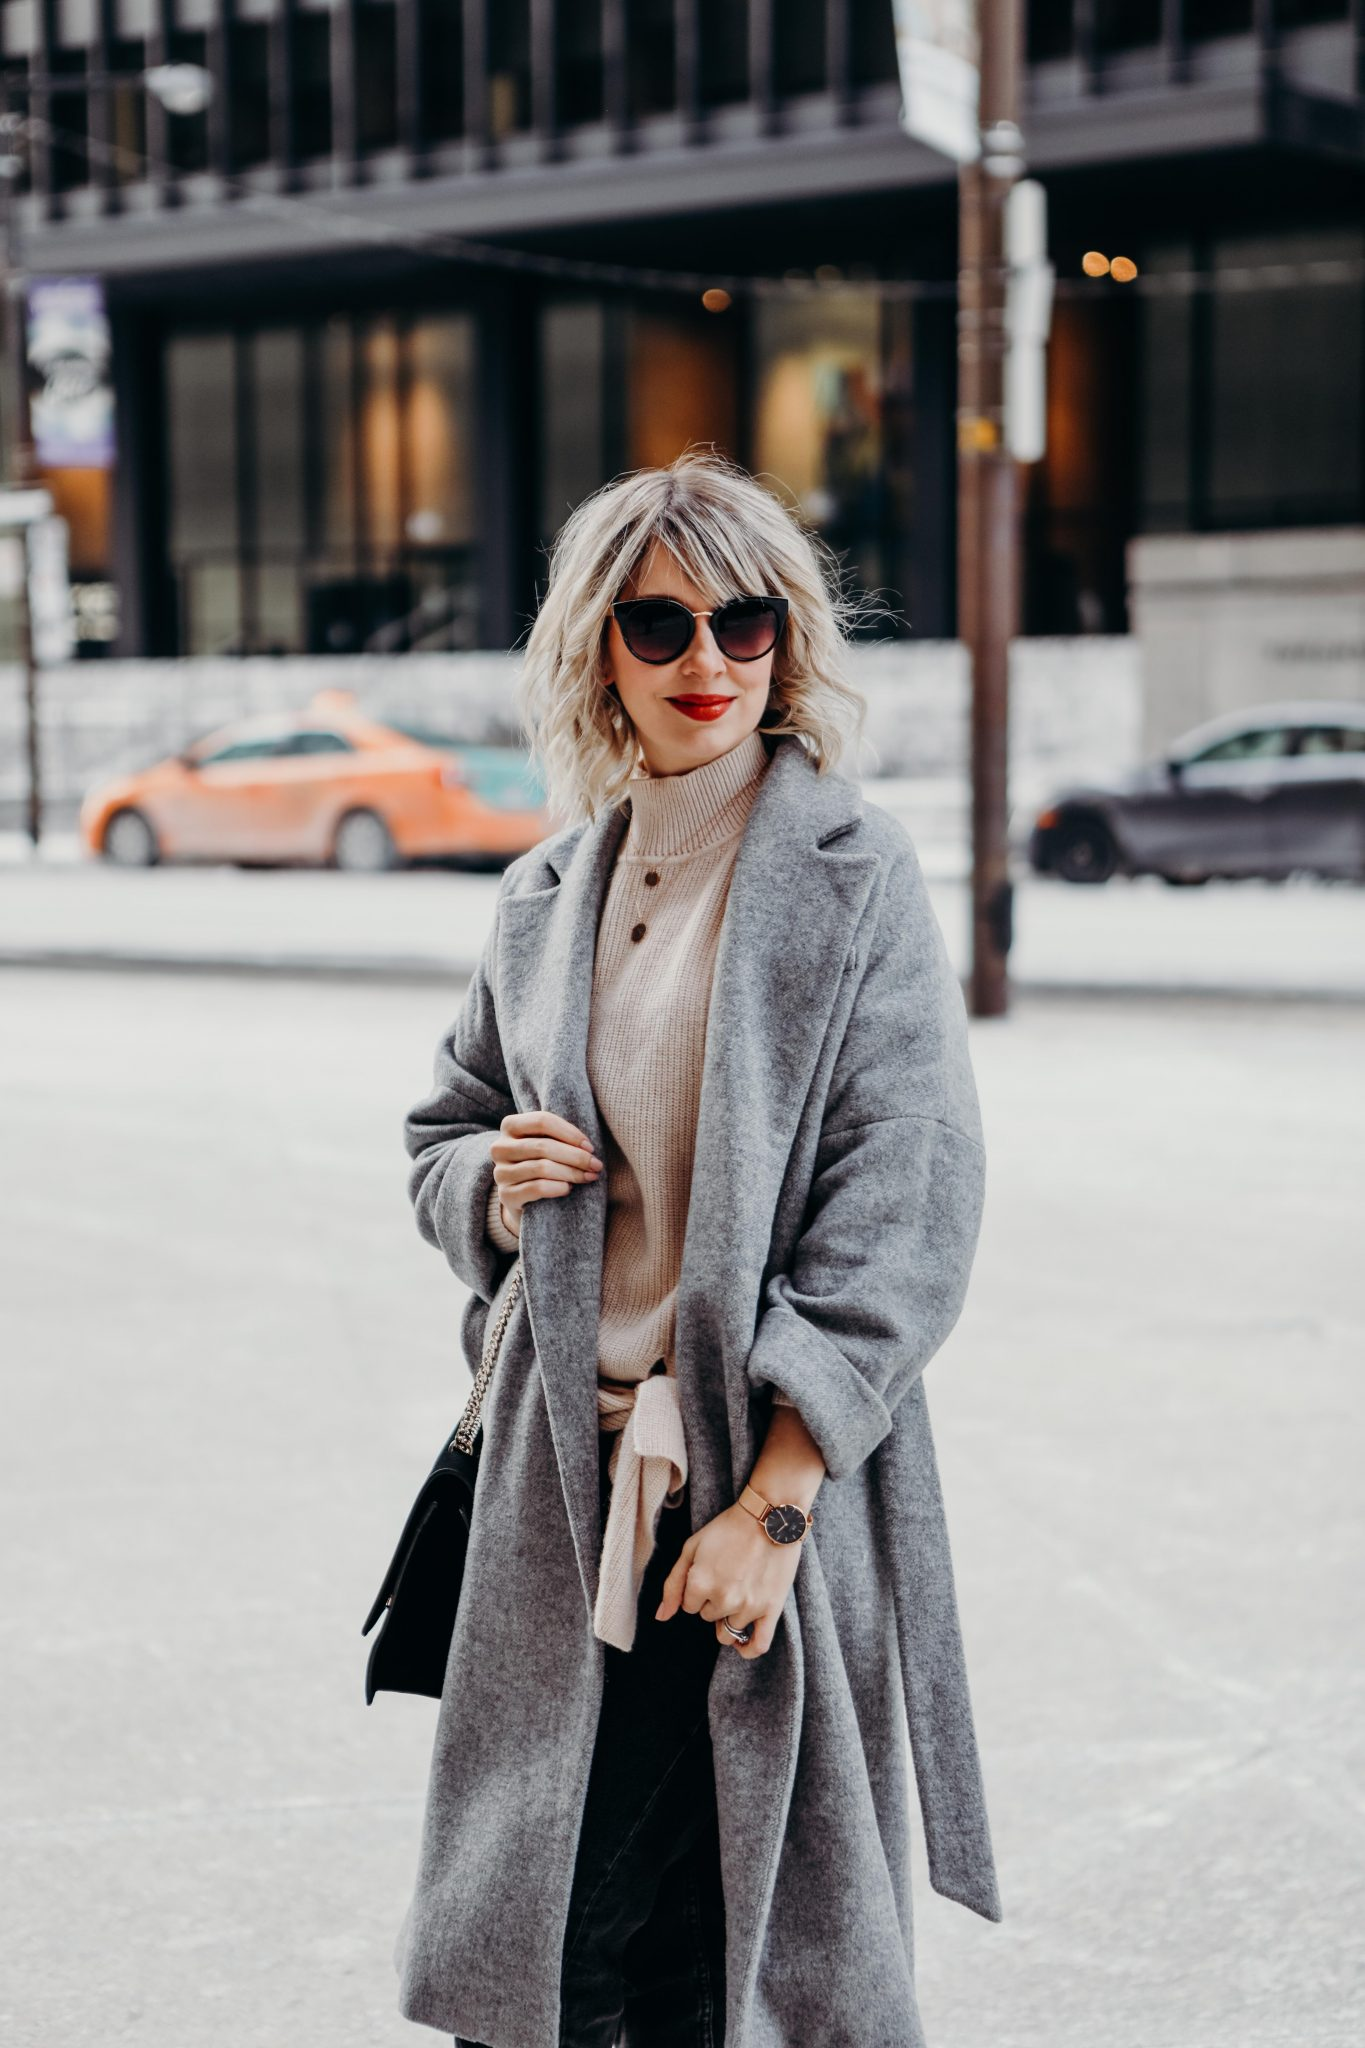 long coat style in the city (3 of 7)